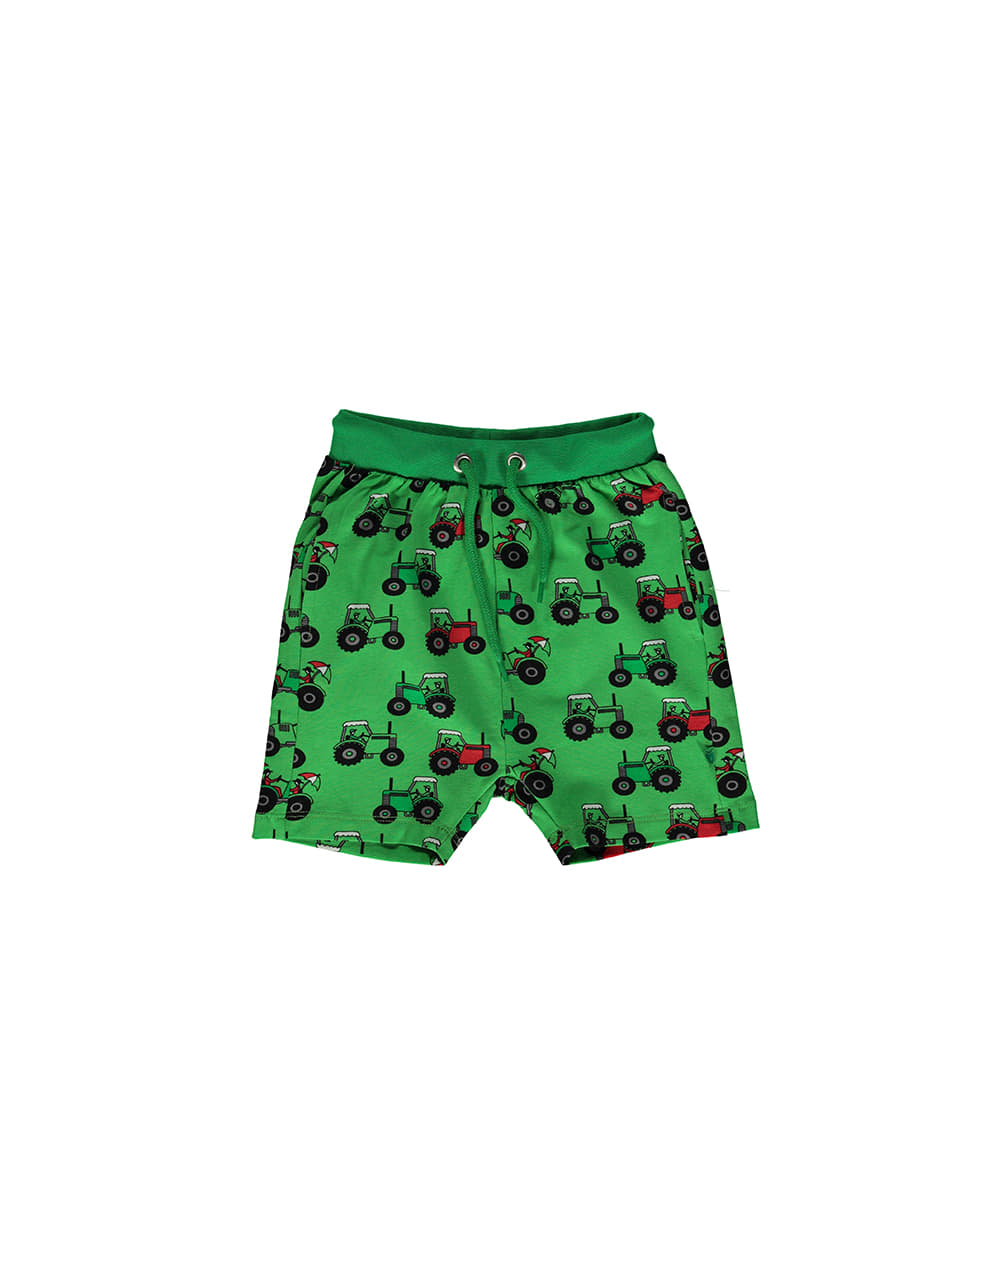 SMAFOLK Shorts with Tractor   Green